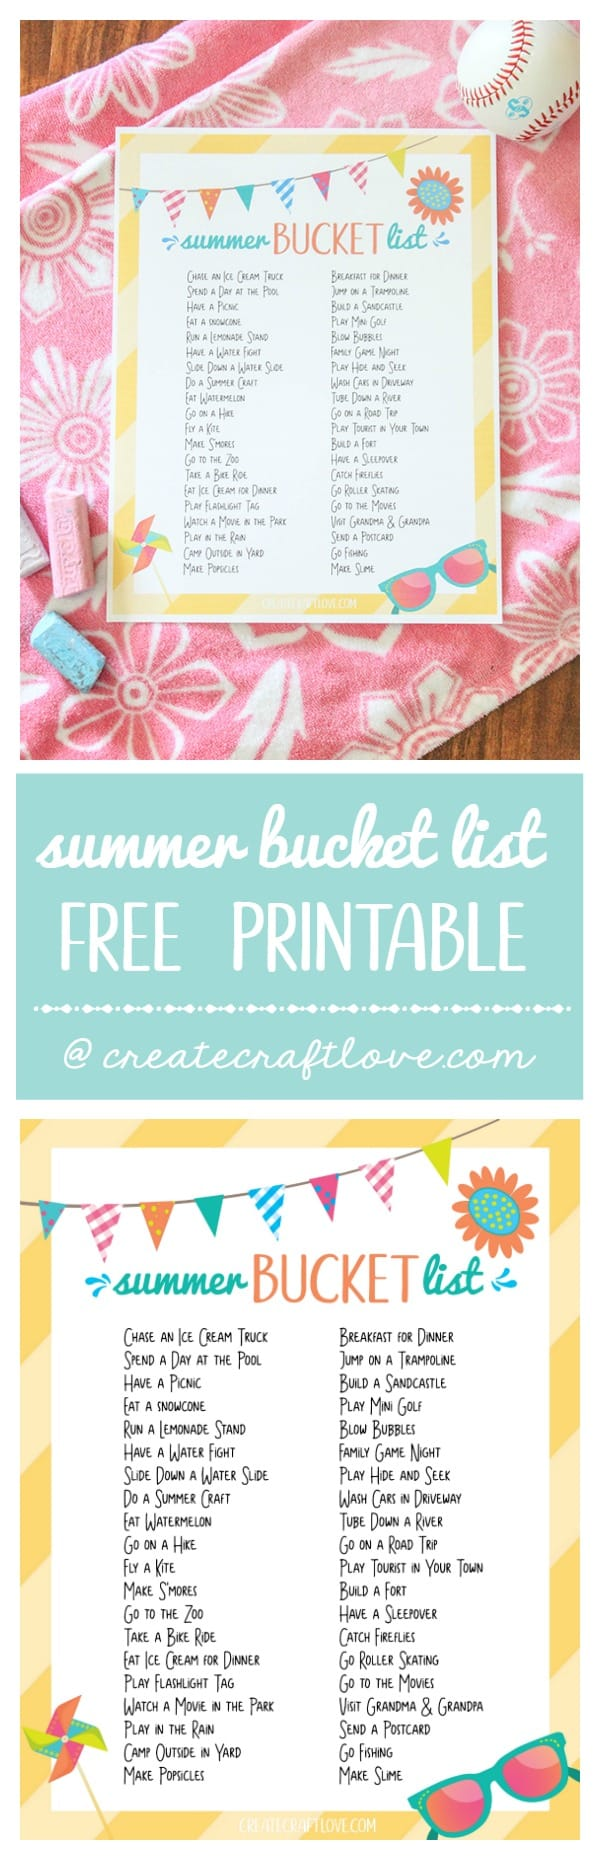 What activities would you add to this Summer Bucket List printable?